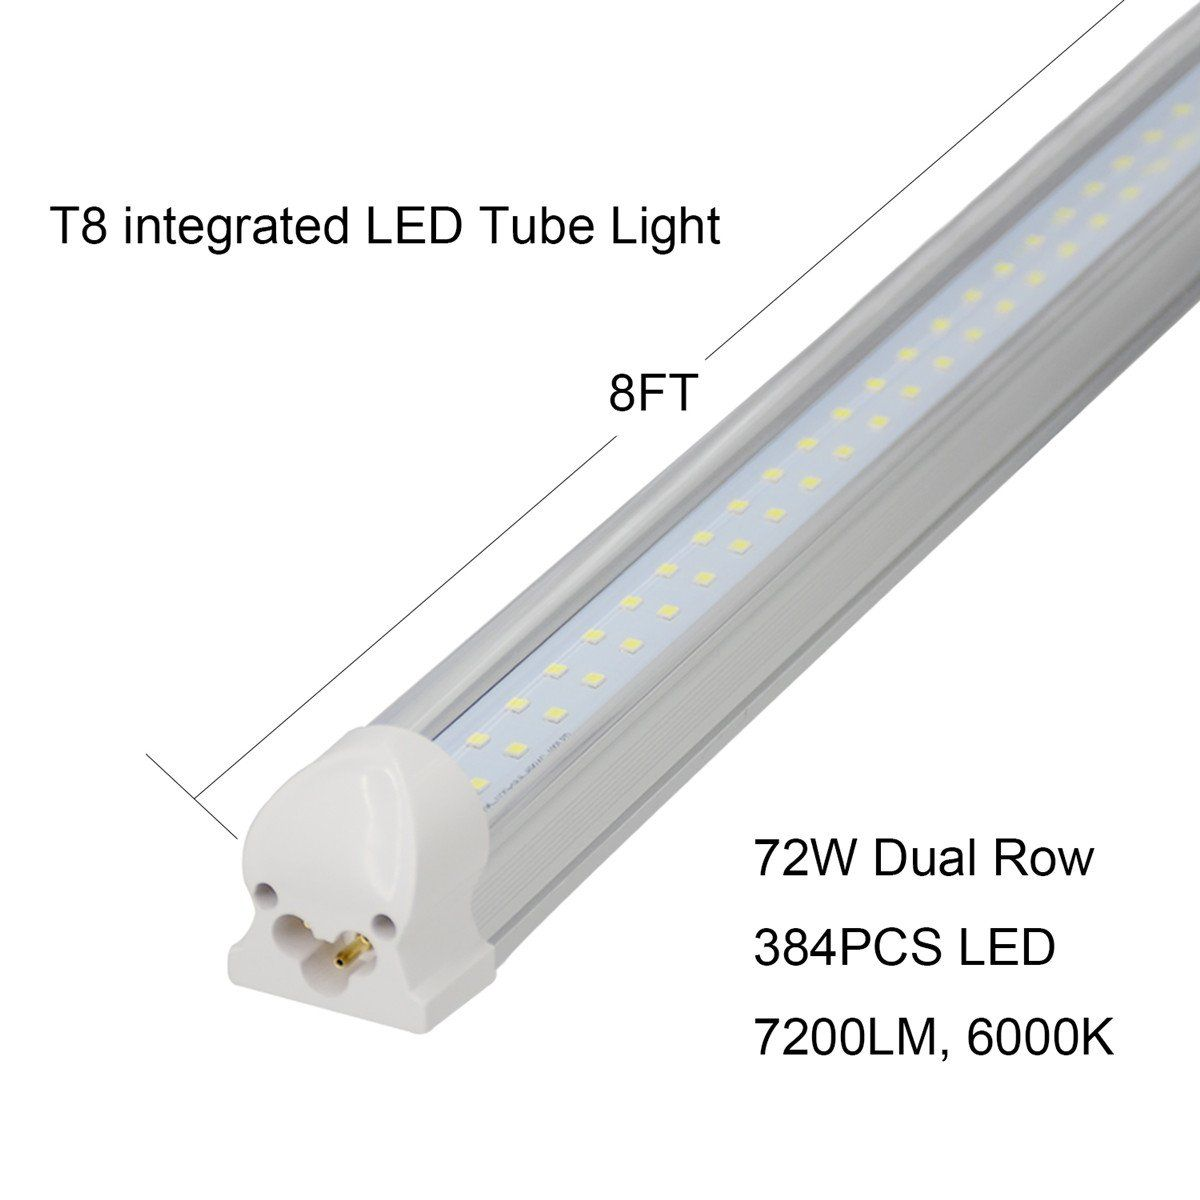 Jesled 8ft Led Tube Light Bulbs 72w 7200lm 150w Fluorescent Replacement 6000k Cool White Glow Dual Row Integrated 8 F Led Tube Light Tube Light Led Shop Lights